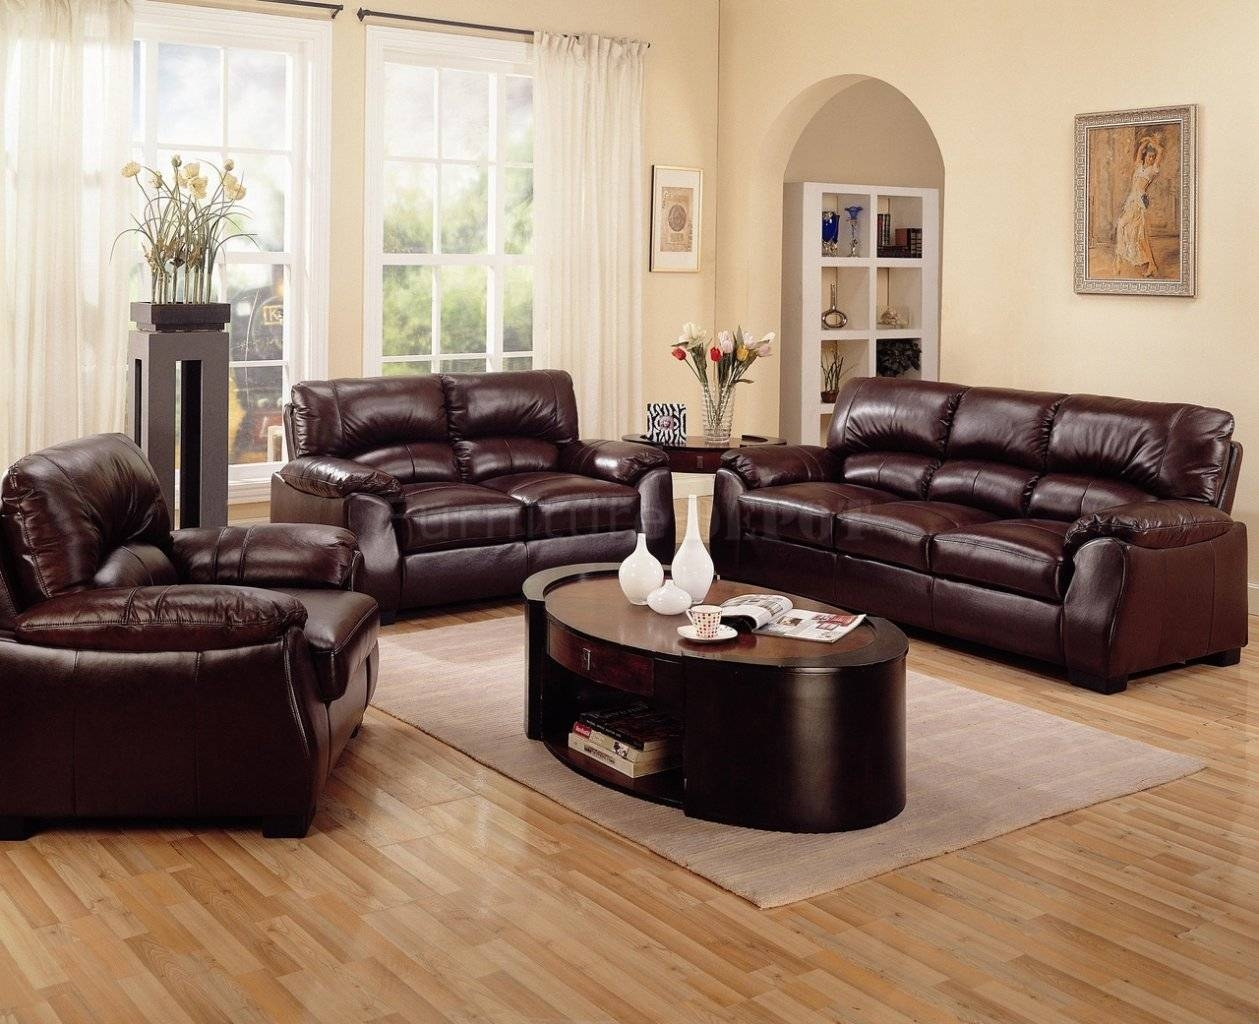 Leather Living Room Set Clearance Living Room Leather Furniture On with Black Sofas for Living Room (Image 4 of 15)